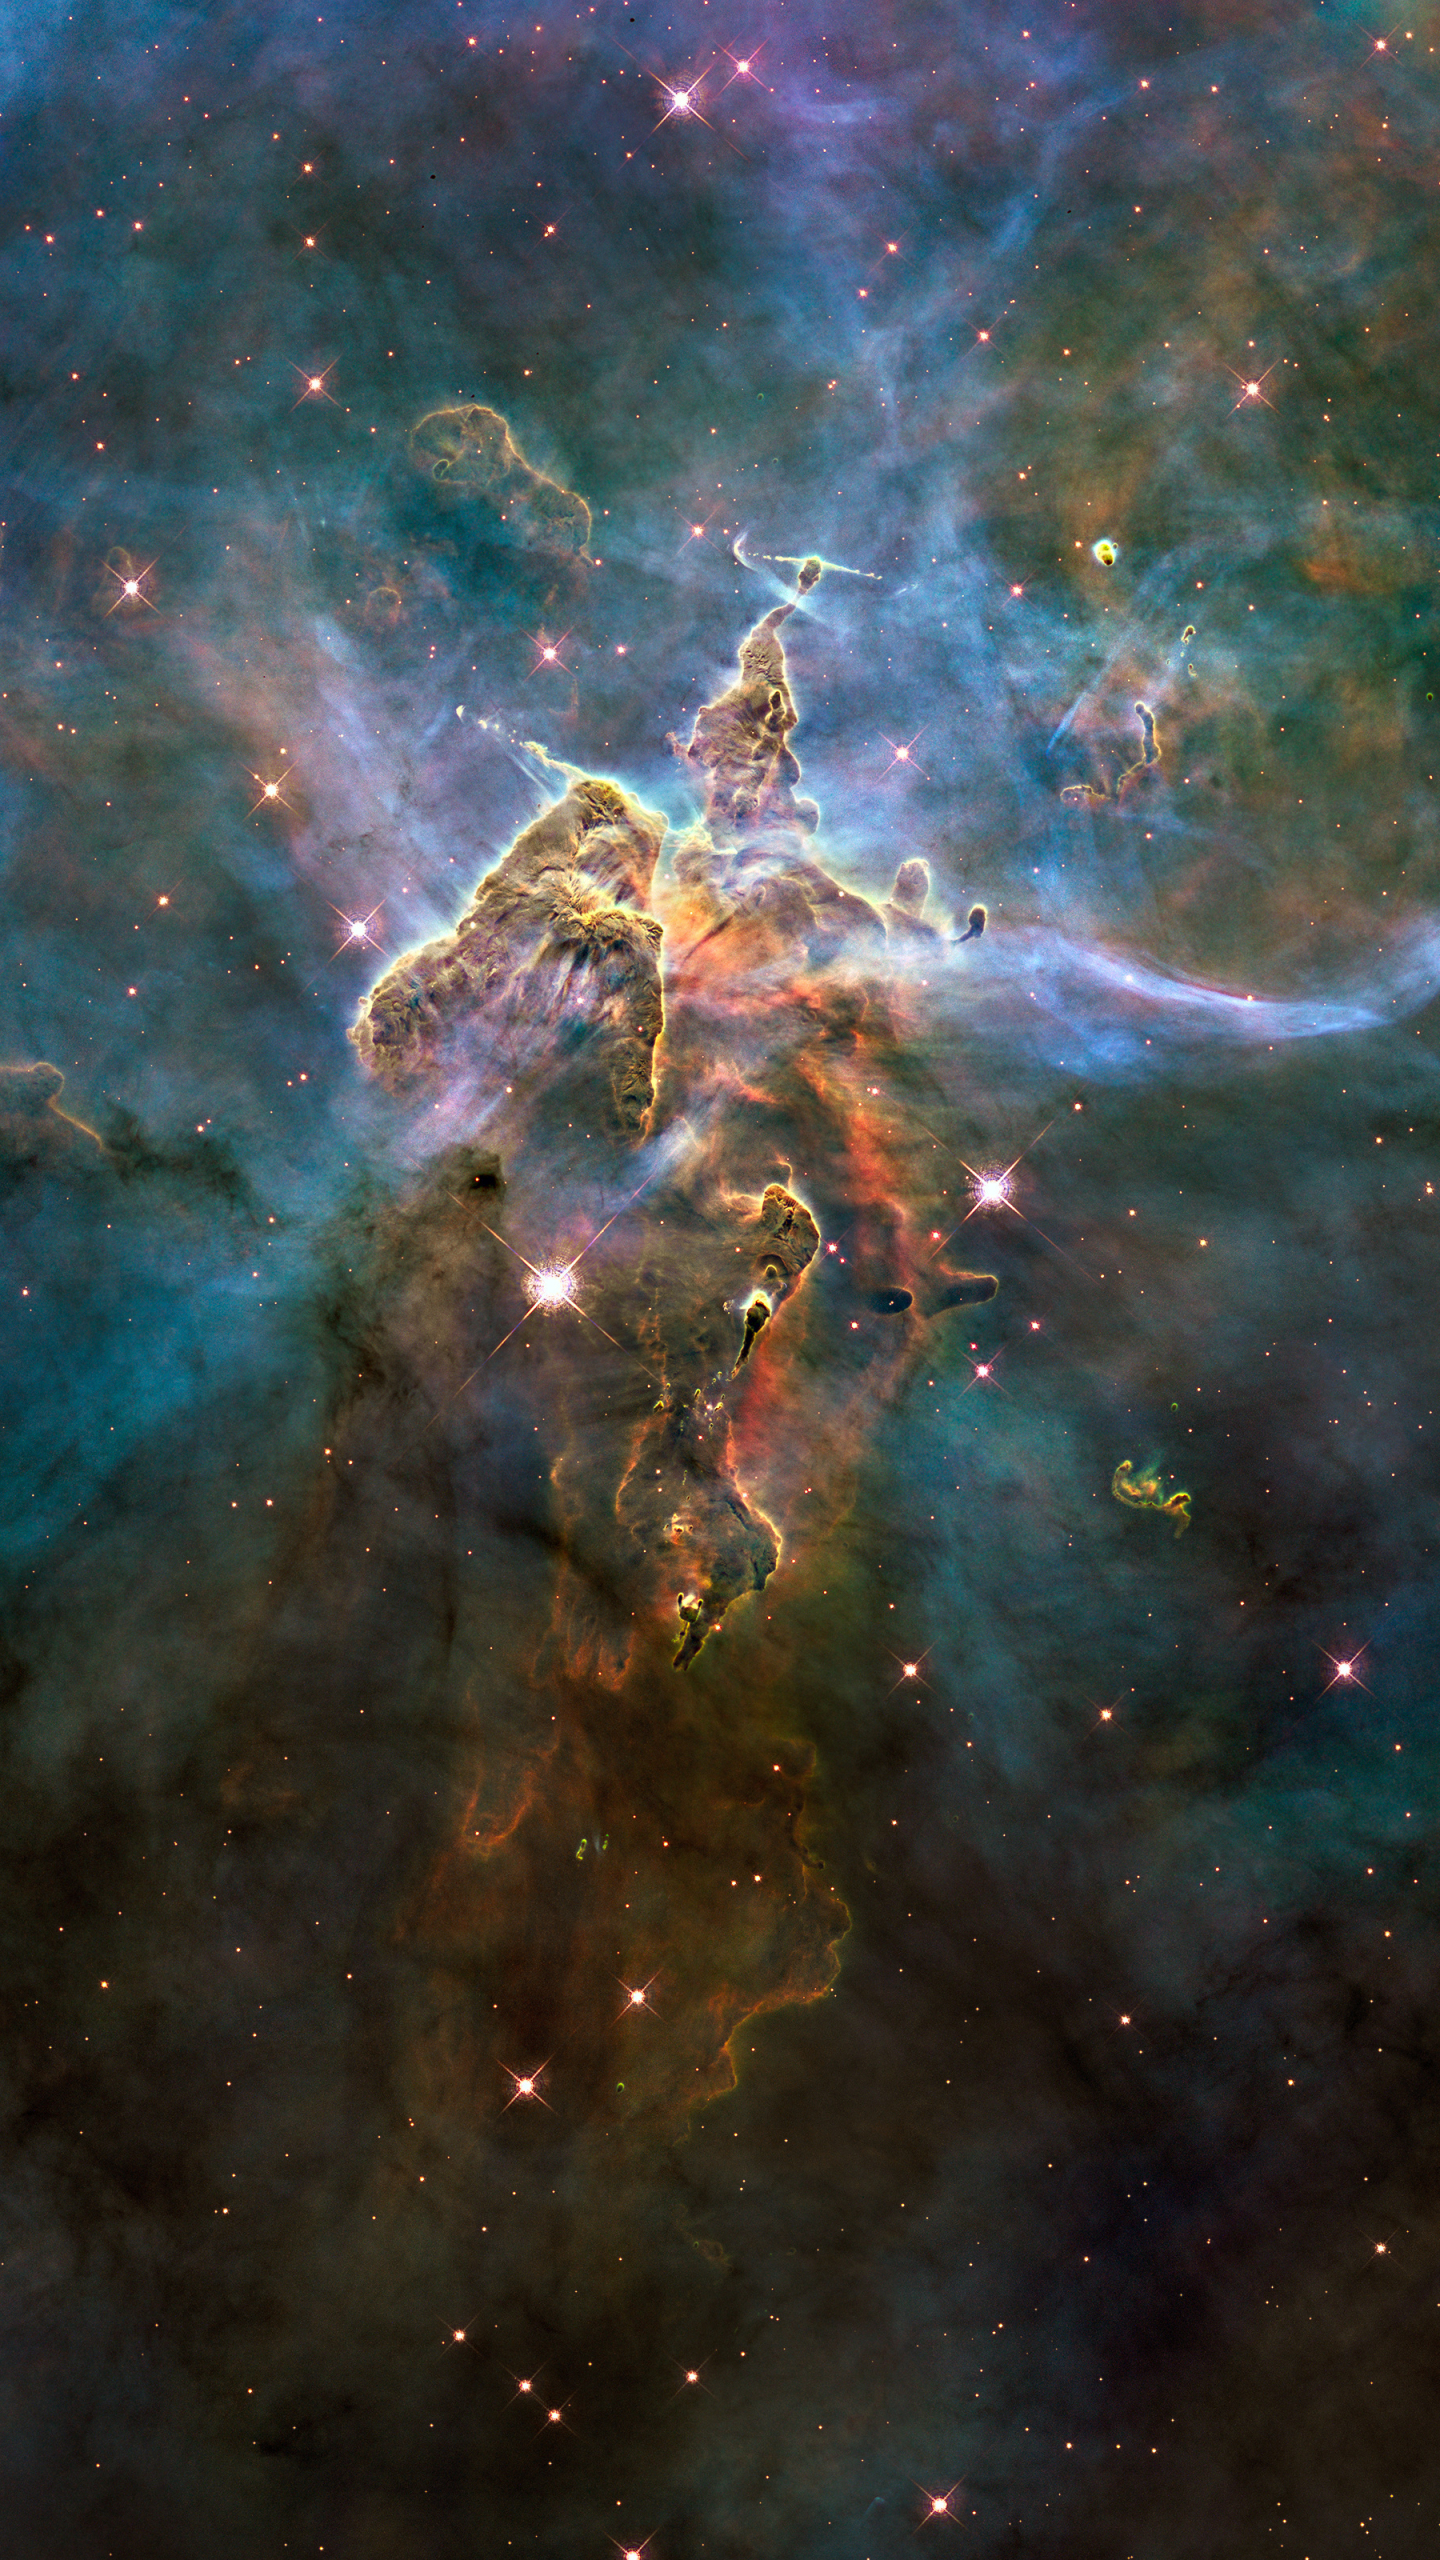 Free Download Hubble Space Telescope Photos And Wallpapers Earth Blog 3200x3200 For Your Desktop Mobile Tablet Explore 49 Hubble Telescope Wallpaper Pictures Hd Nasa Wallpapers Best Space Wallpapers Hd